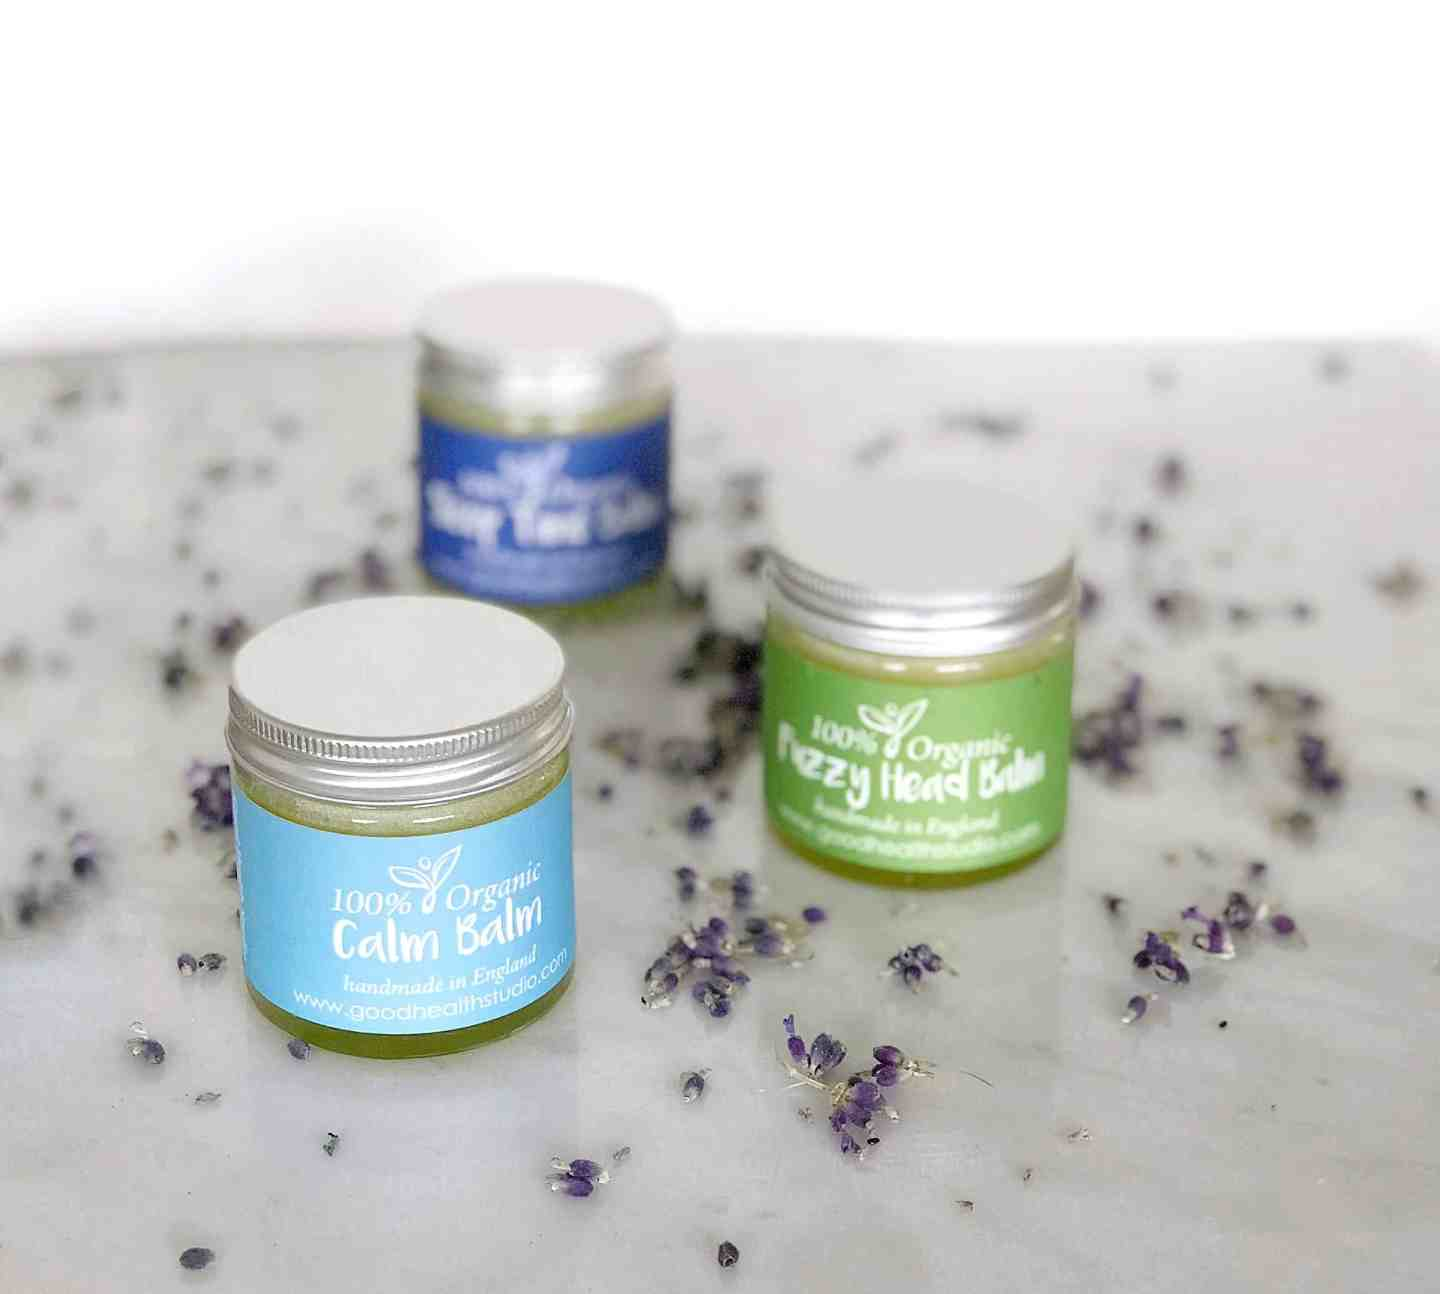 100% Organic Balms to help sleep and relaxation